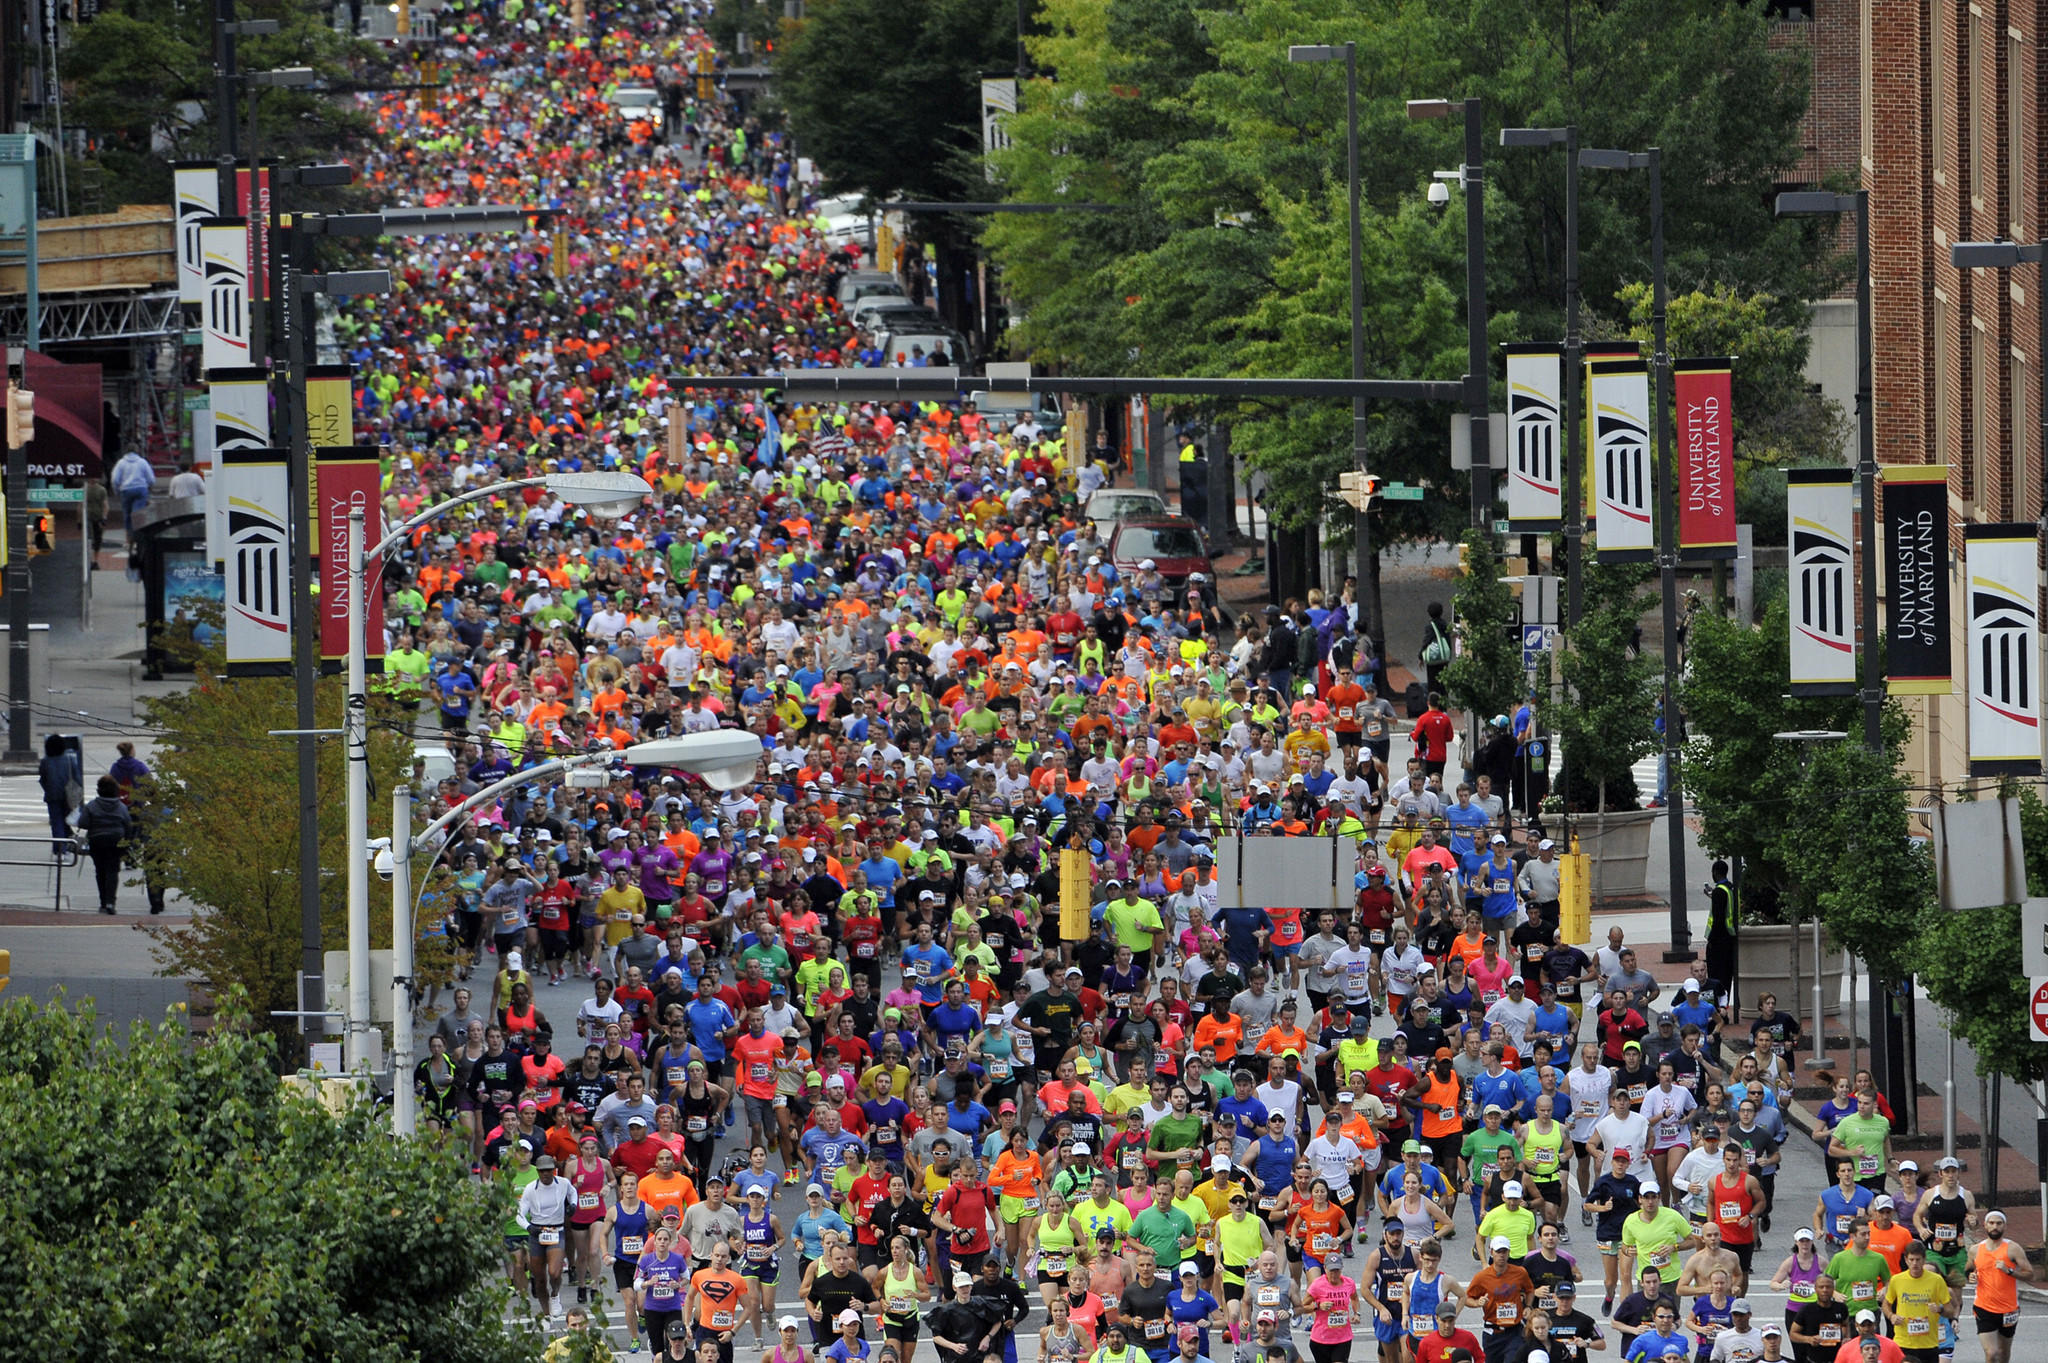 Runners begin the Baltimore Running Festival on Paca Street.